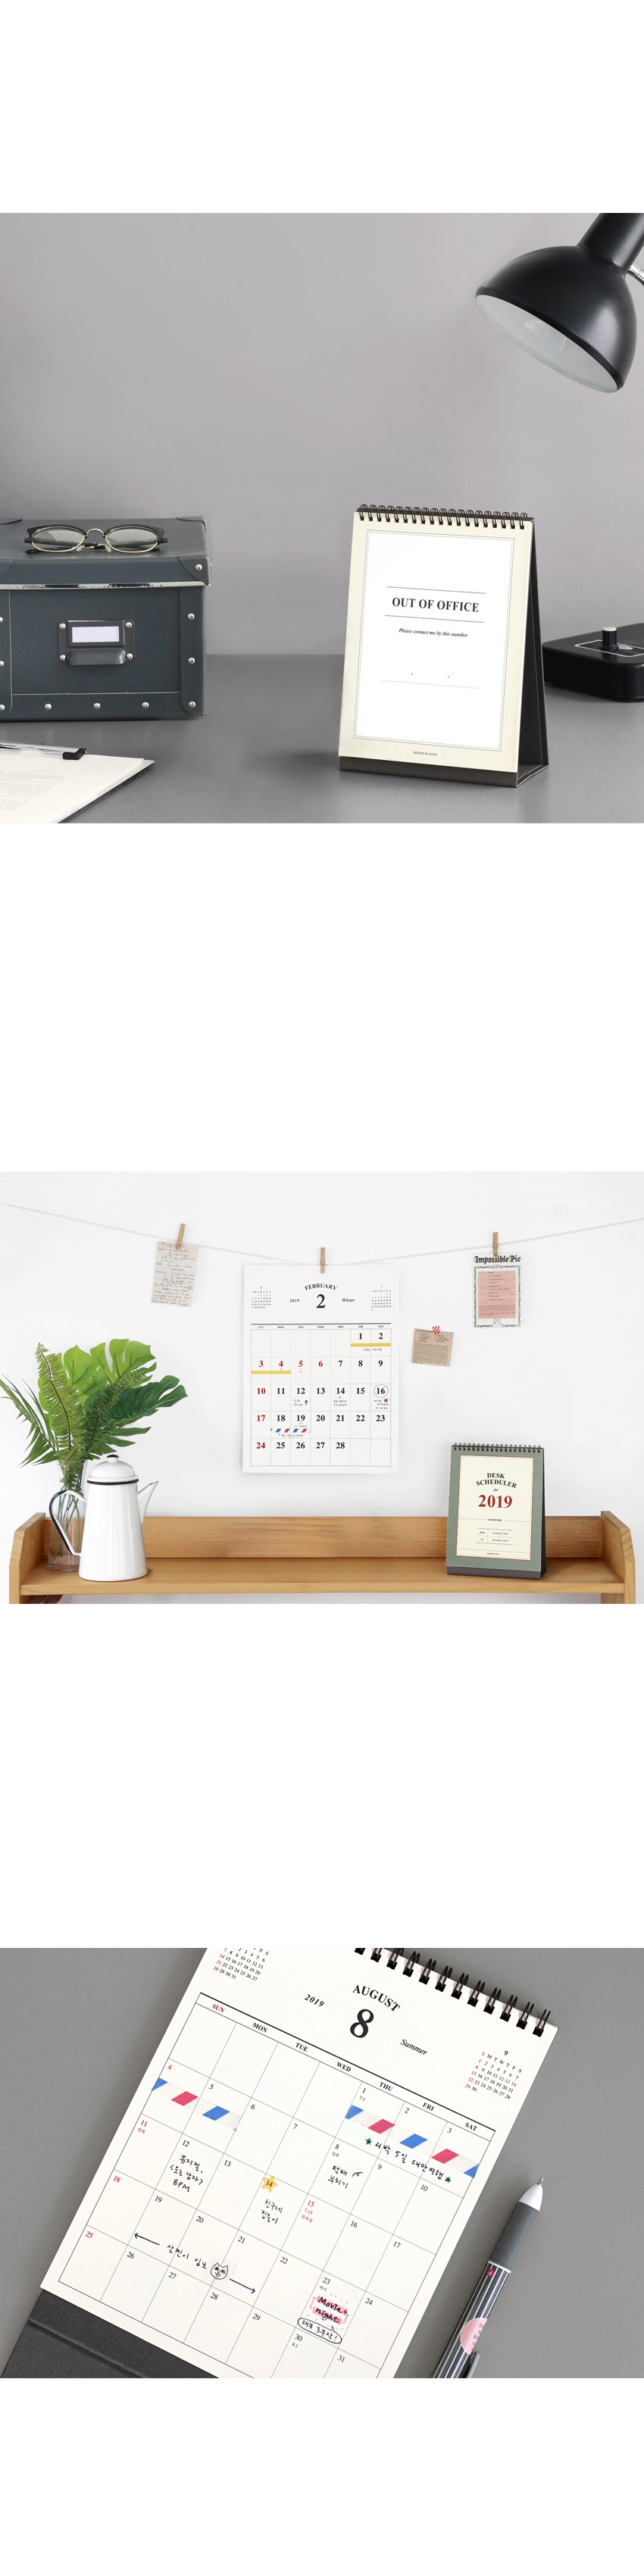 2019-desk-scheduler-d4.jpg